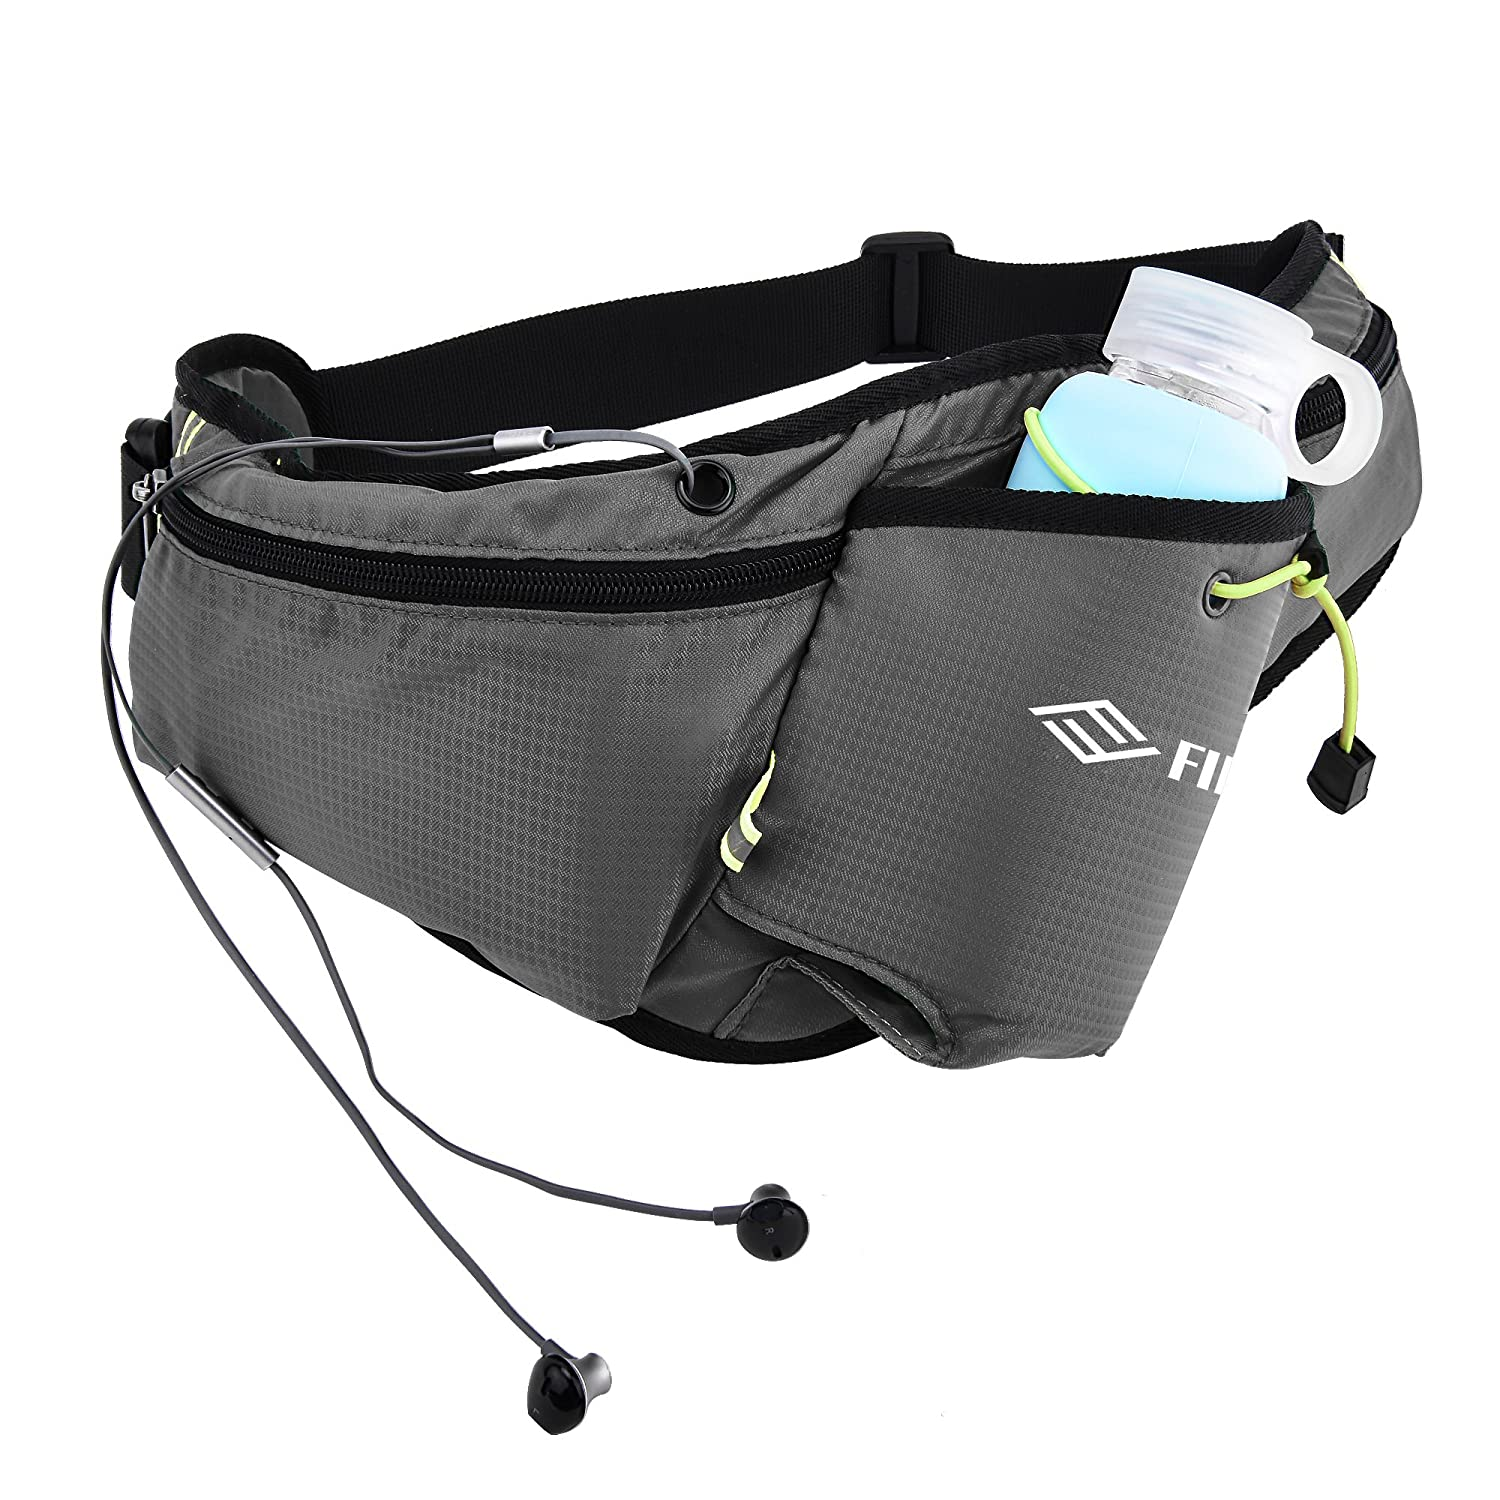 FILWO Waterproof Fanny Pack with Water Bottle Holder, Running Belt for Men Women Waist Pack with Headphone Hole for Running Hiking Travel Camping Climbing Cycling